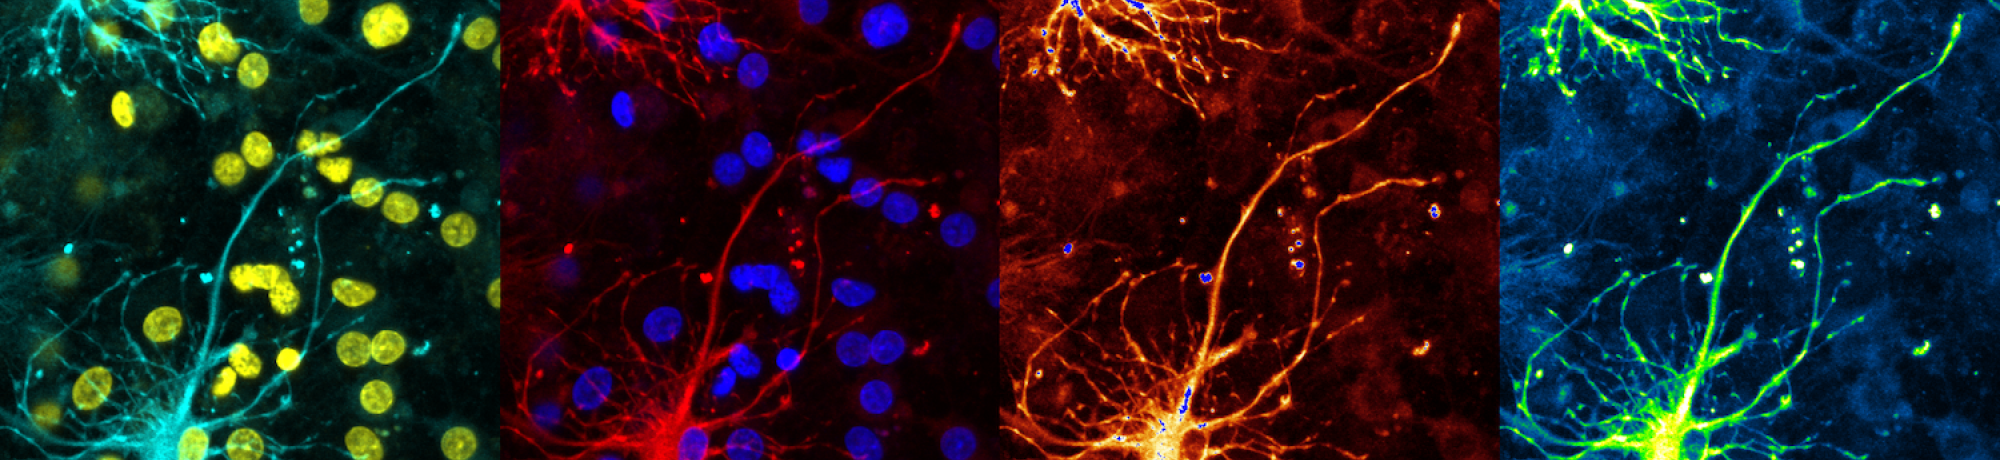 Montage of an image of neurons, captured using a confocal microscop. Neurons and nuclei shown.